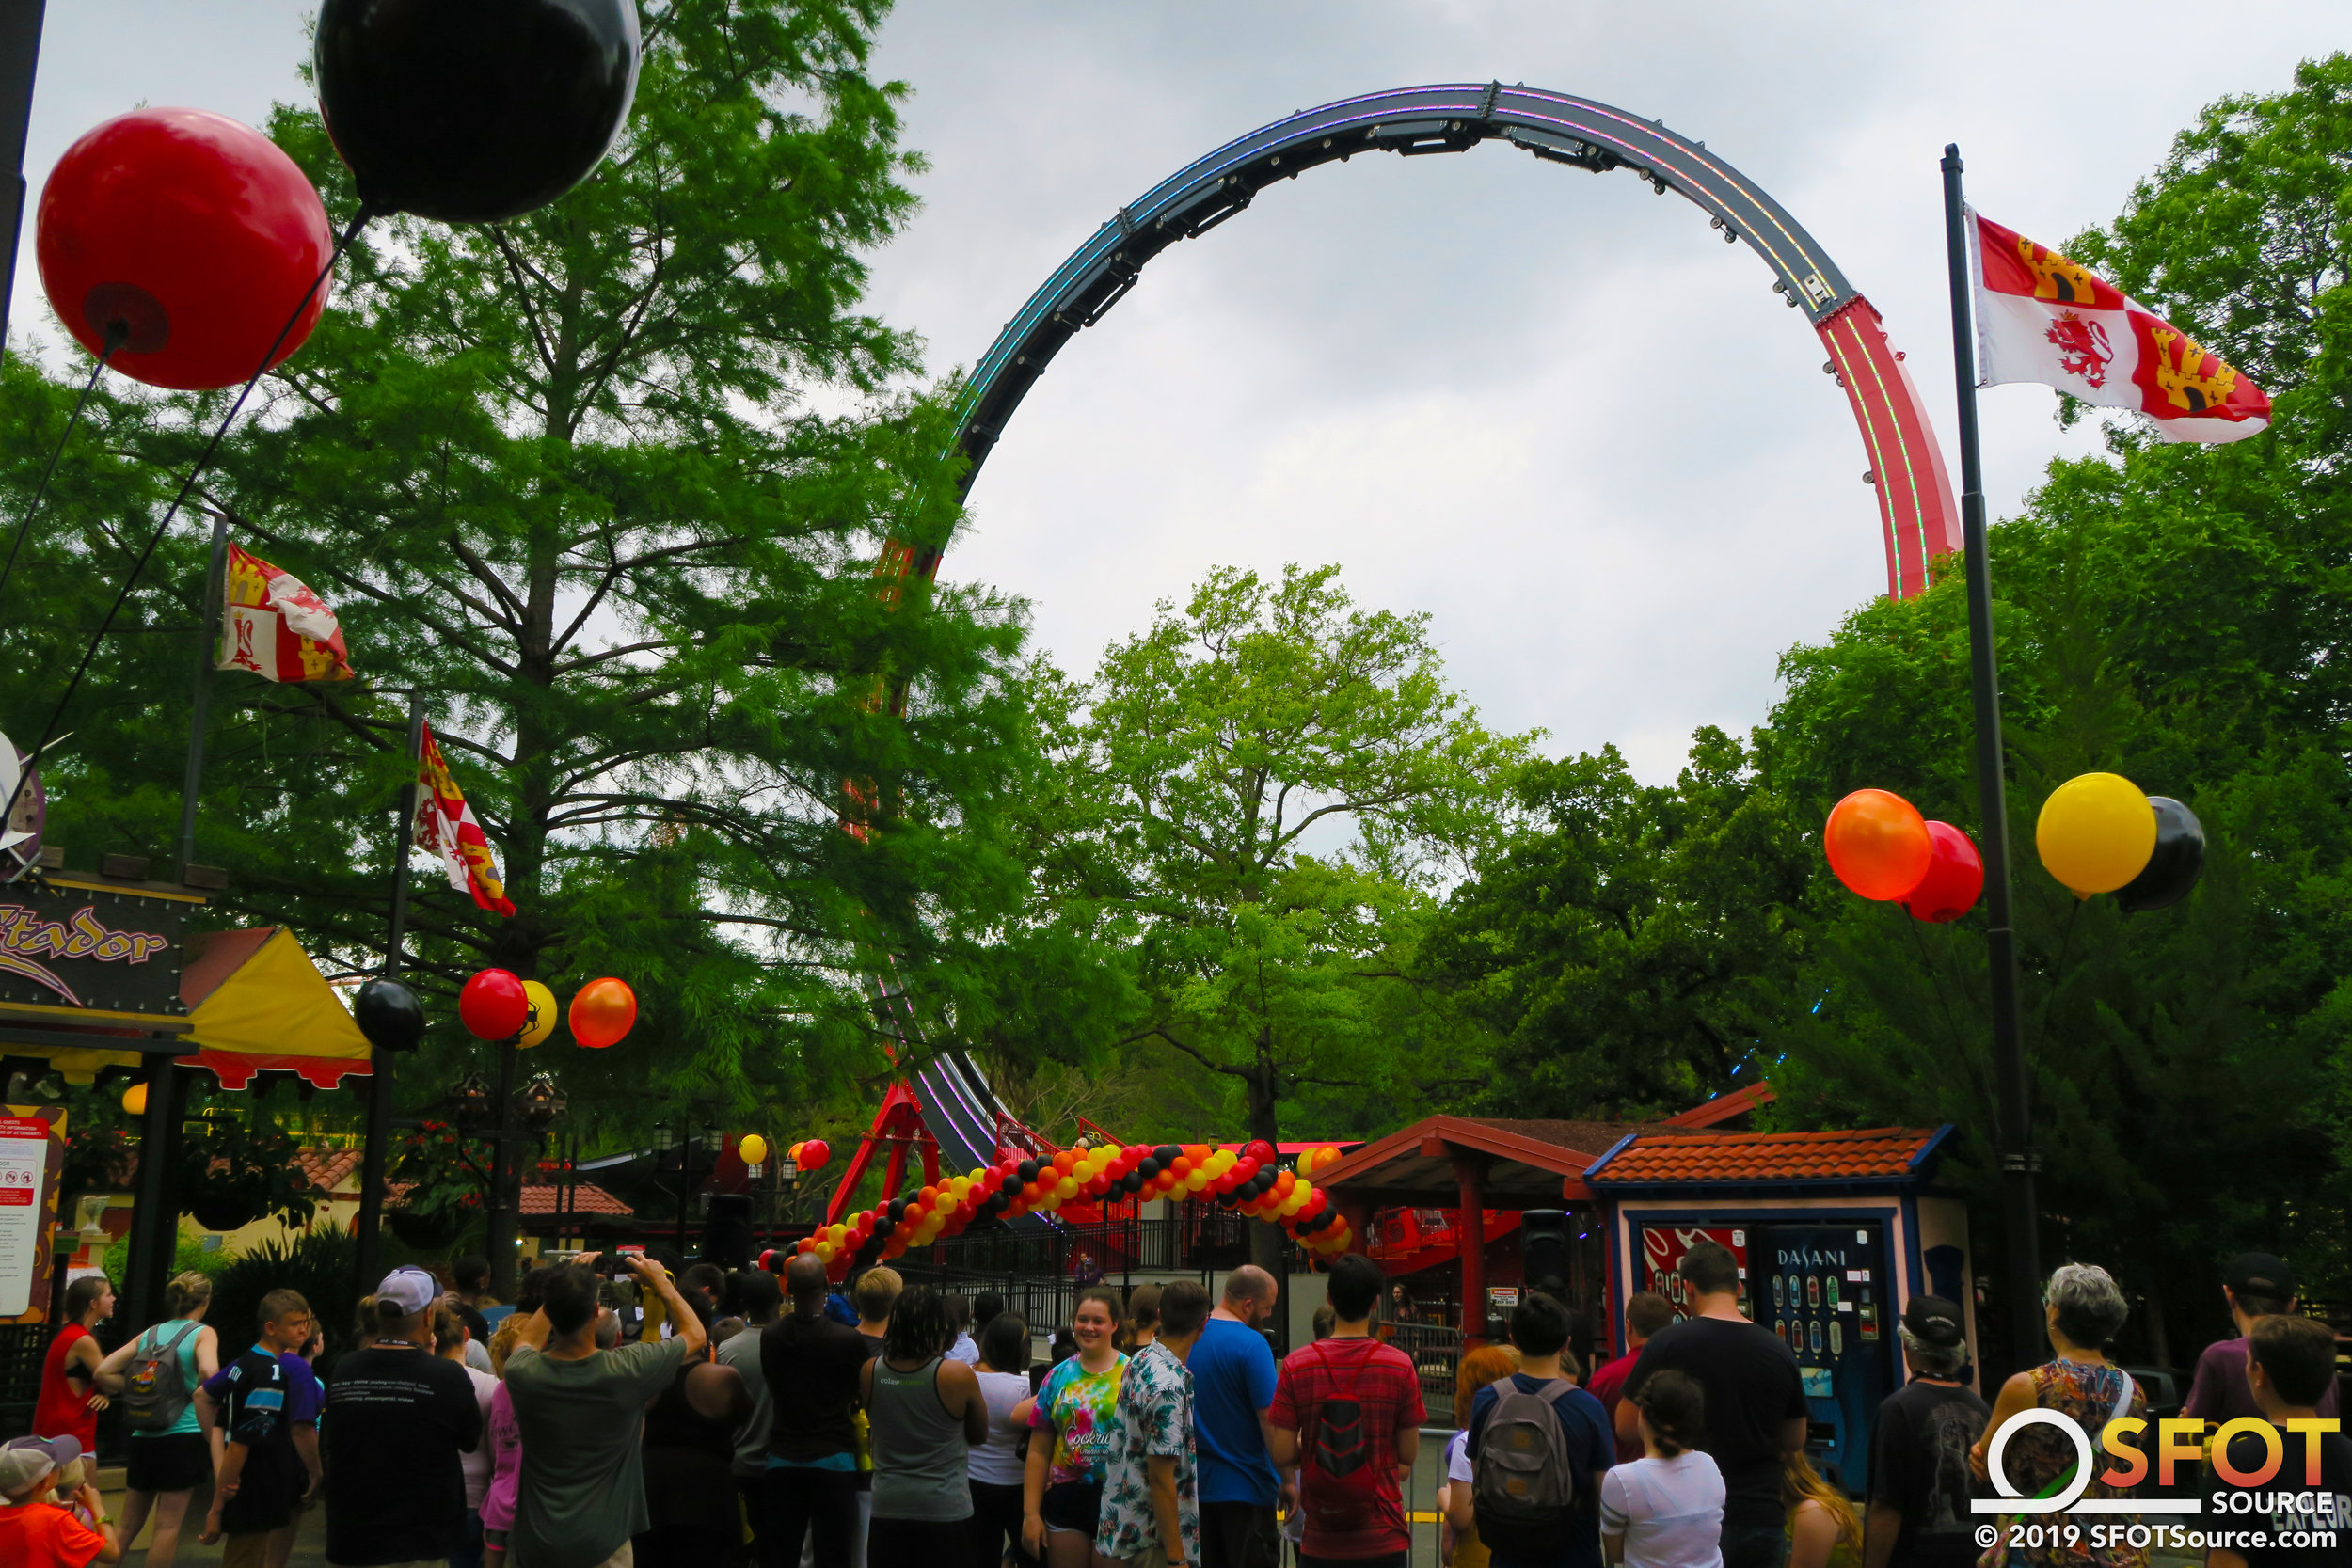 The El Diablo Grand Opening Ceremony took place on May 28, 2019.